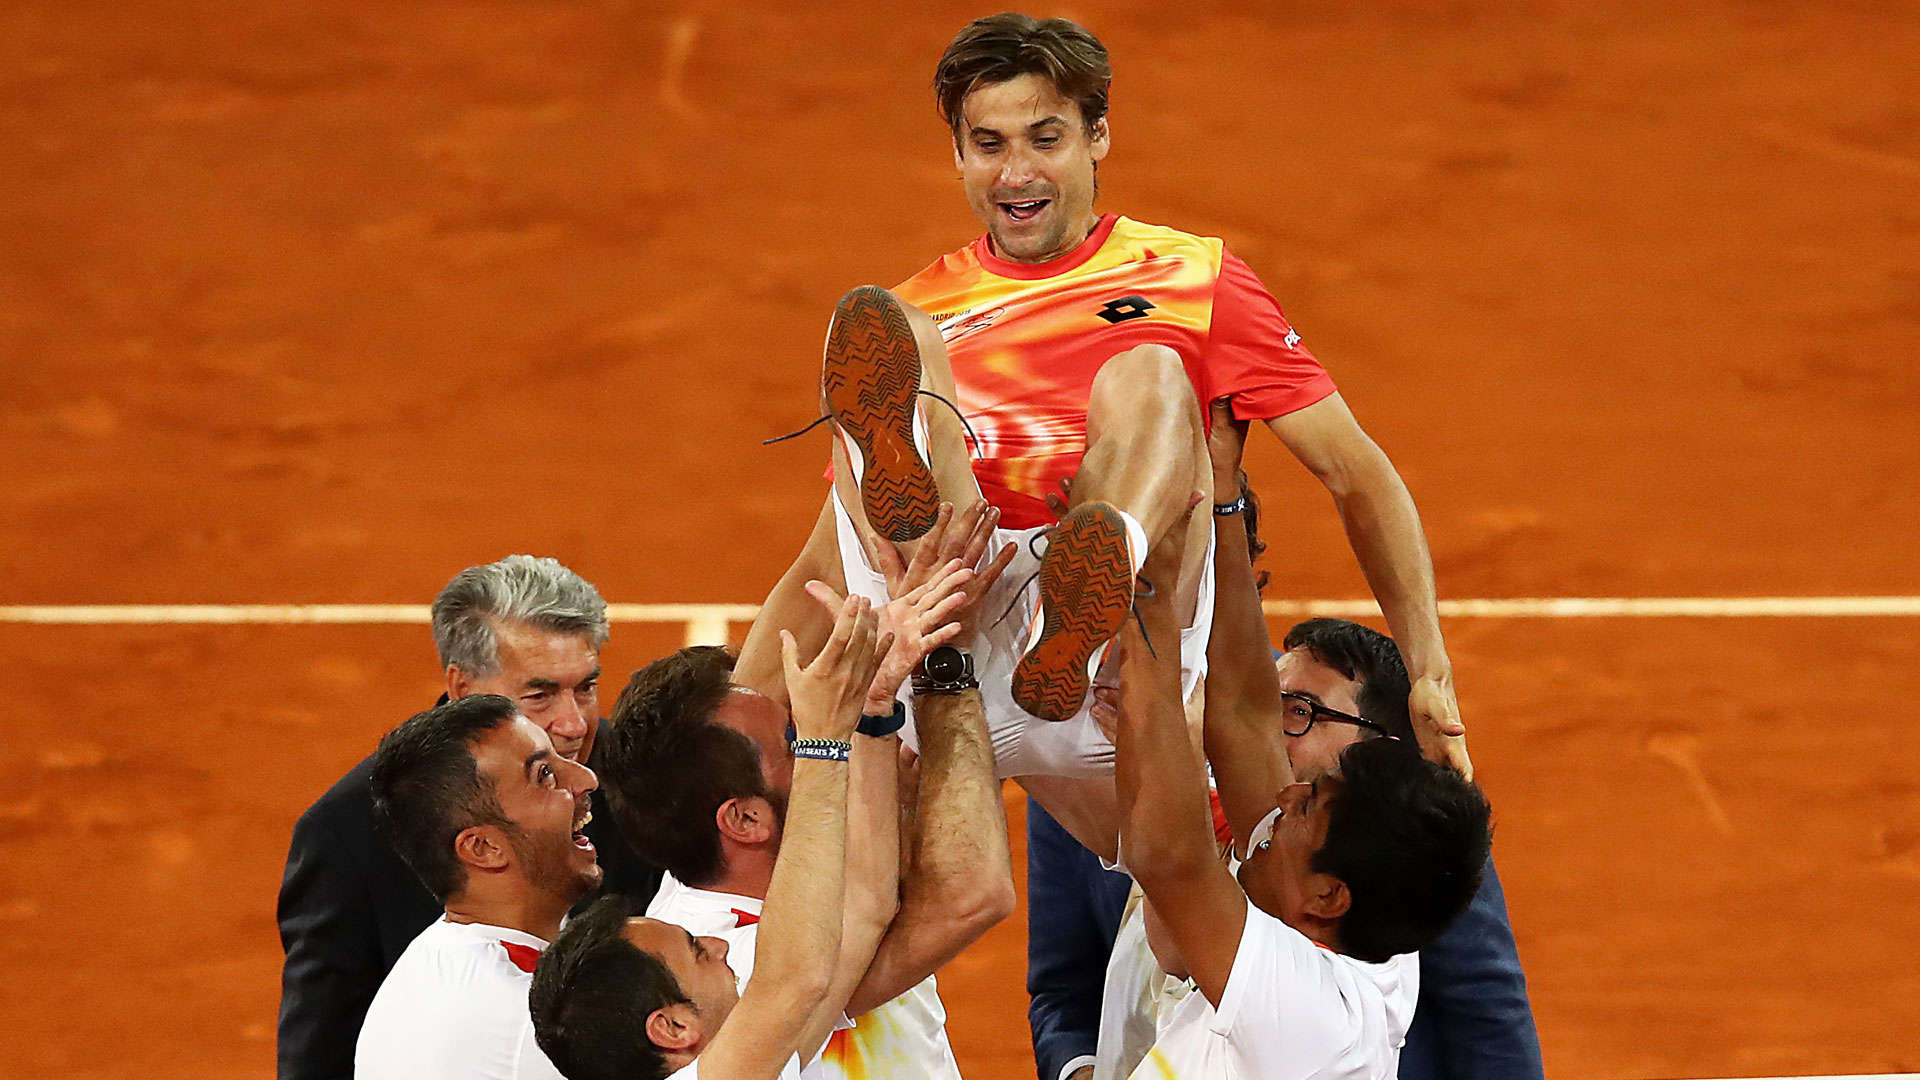 <a href='https://www.atptour.com/en/players/david-ferrer/f401/overview'>David Ferrer</a> reacts during his retirement ceremony in Madrid.